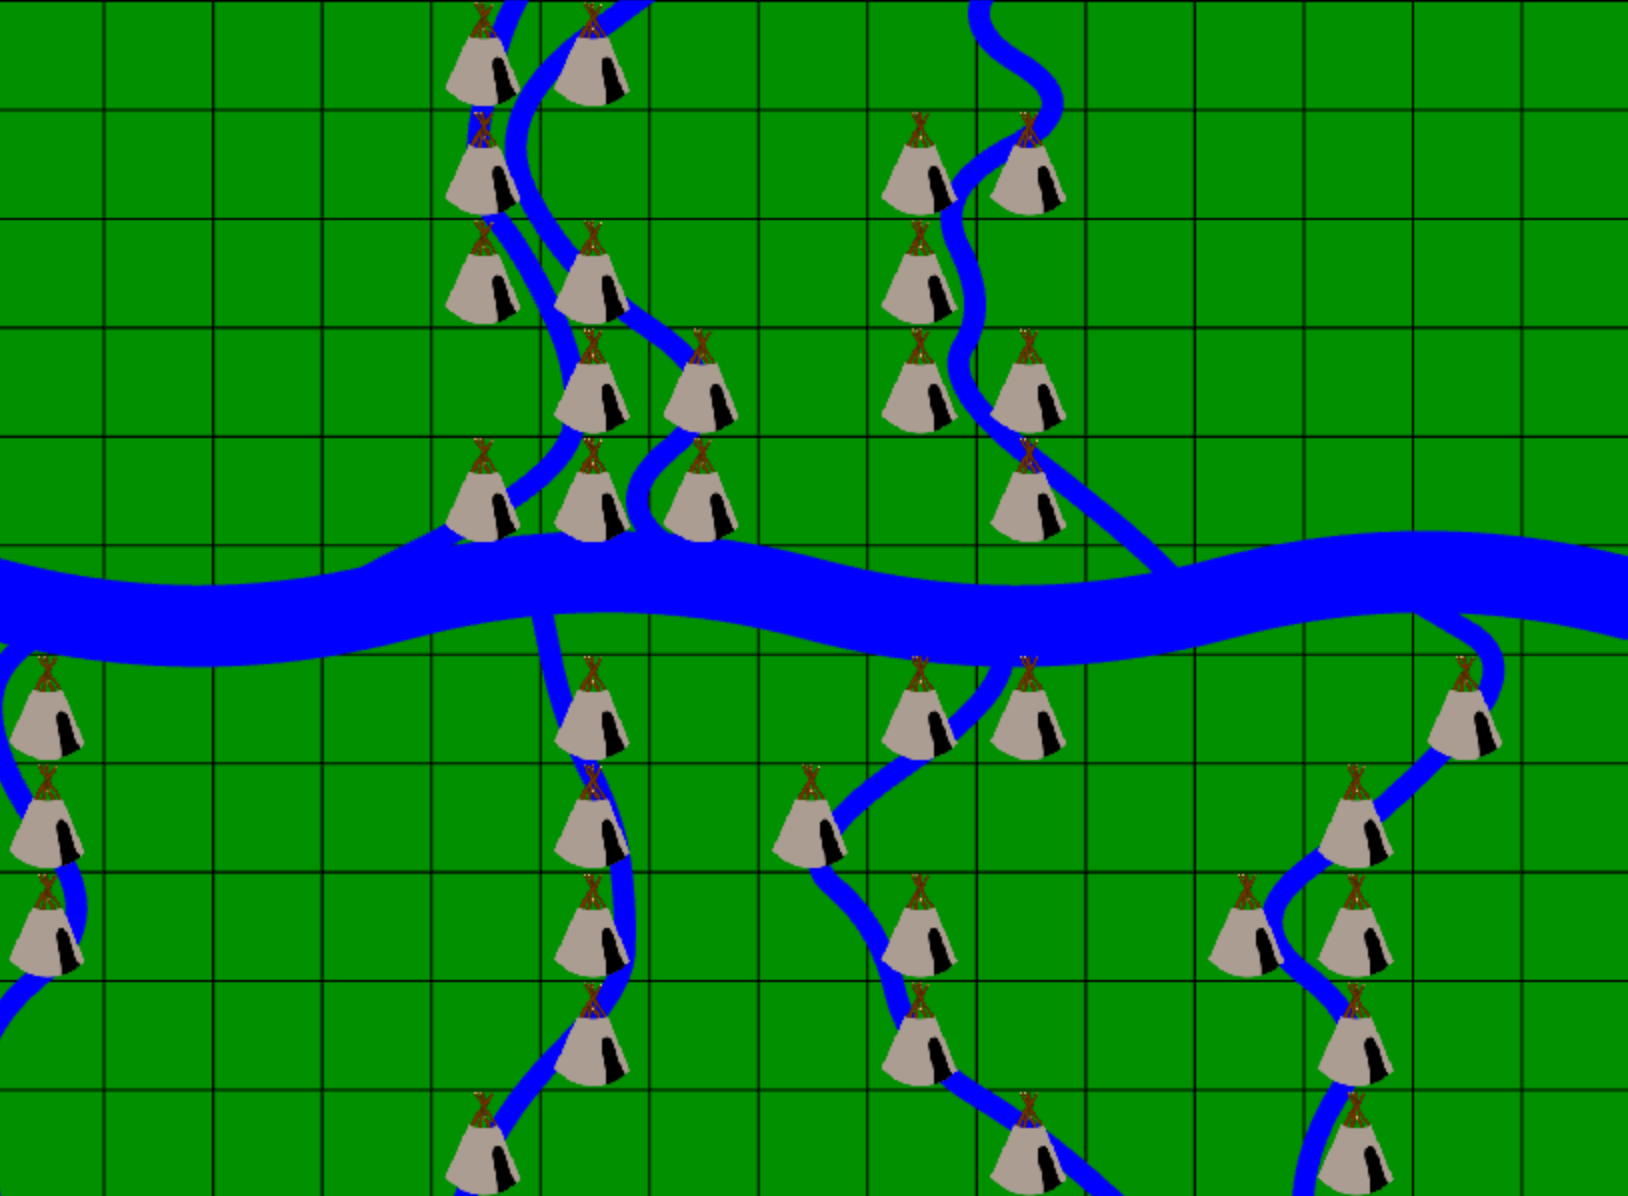 Image: Generated map example with all possible village positions